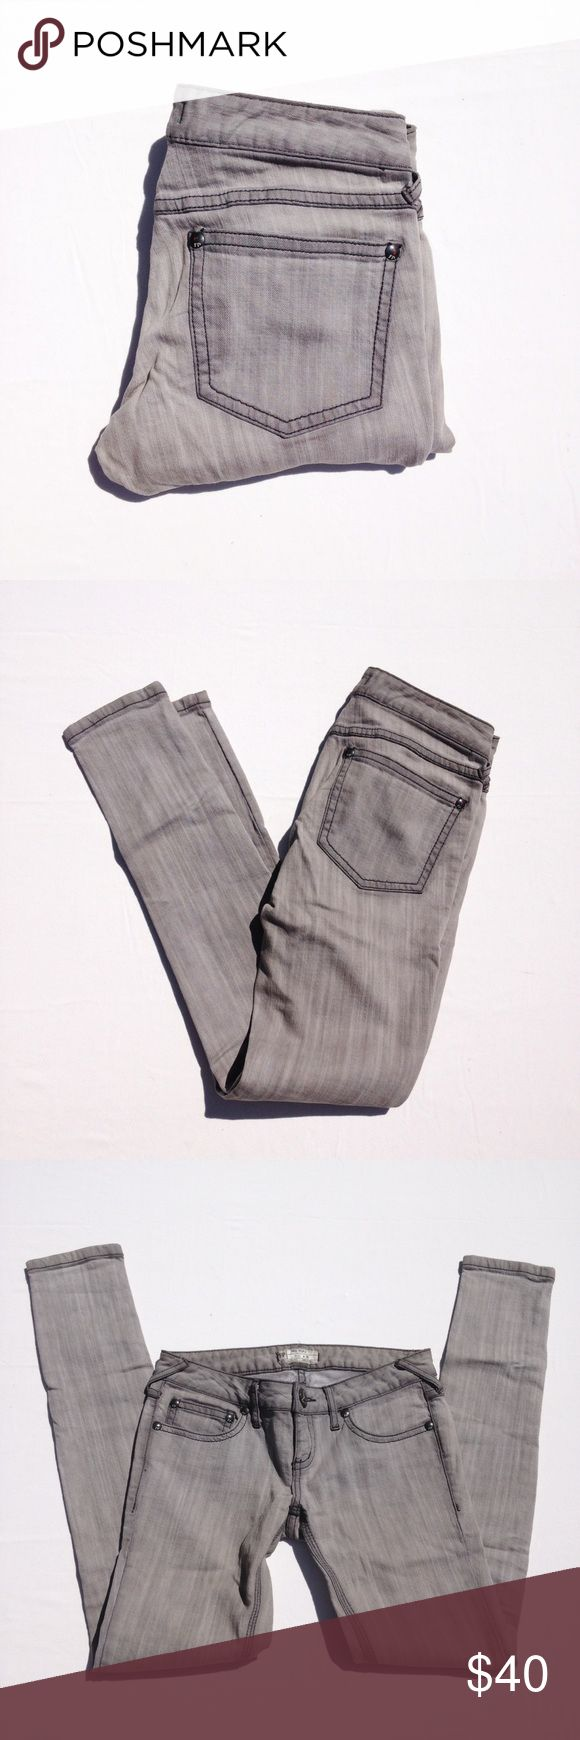 FREE PEOPLE skinny jeans Classic, gray with a little stretch. Inseam appx 31, rise appx 7. Thank you for visiting my closet. Please let me know if you have any questions. Bundle 15% off for 2. Free People Jeans Skinny